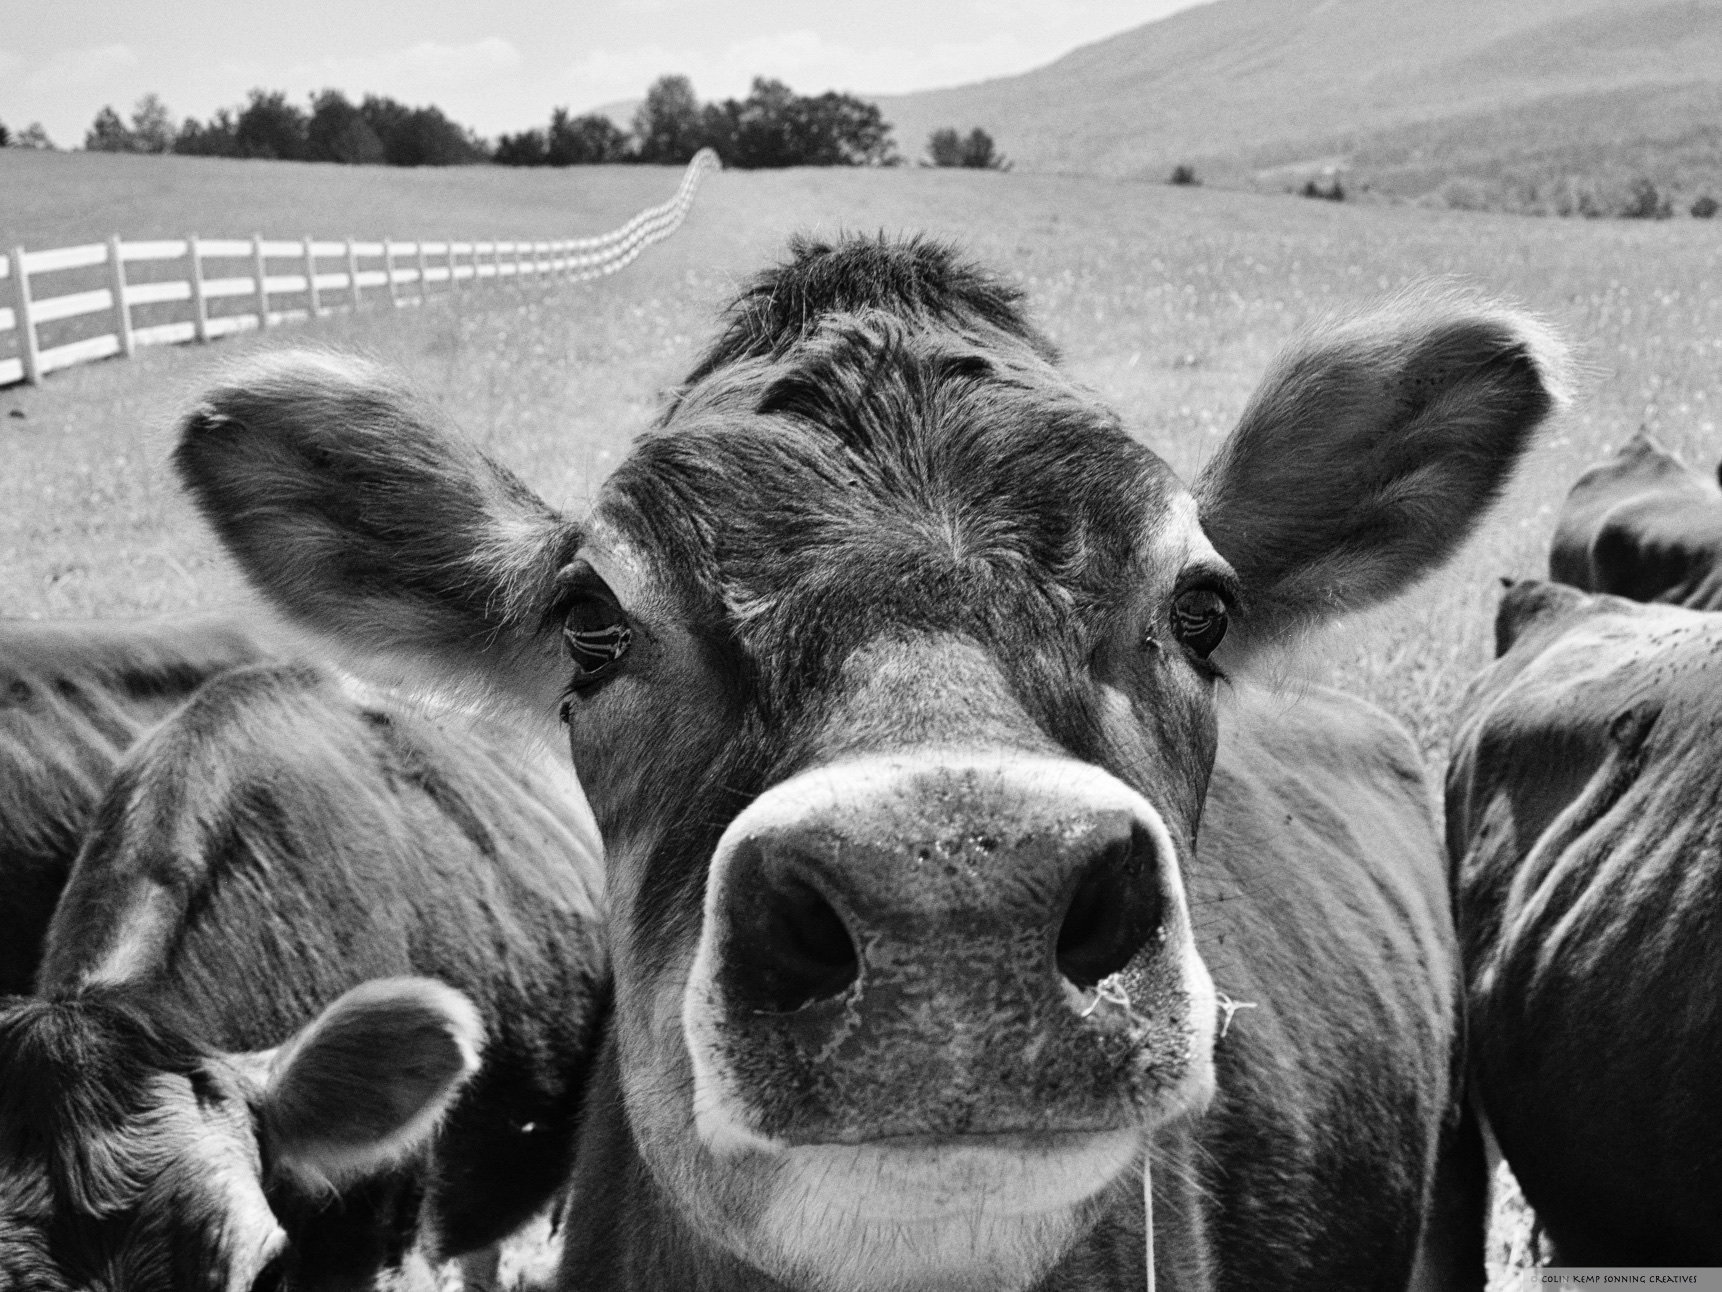 Jersey cow, Vermont, high quality canvas 24x18 inch, inquisitive cow, close up fine art animal photography by Sonning Creatives